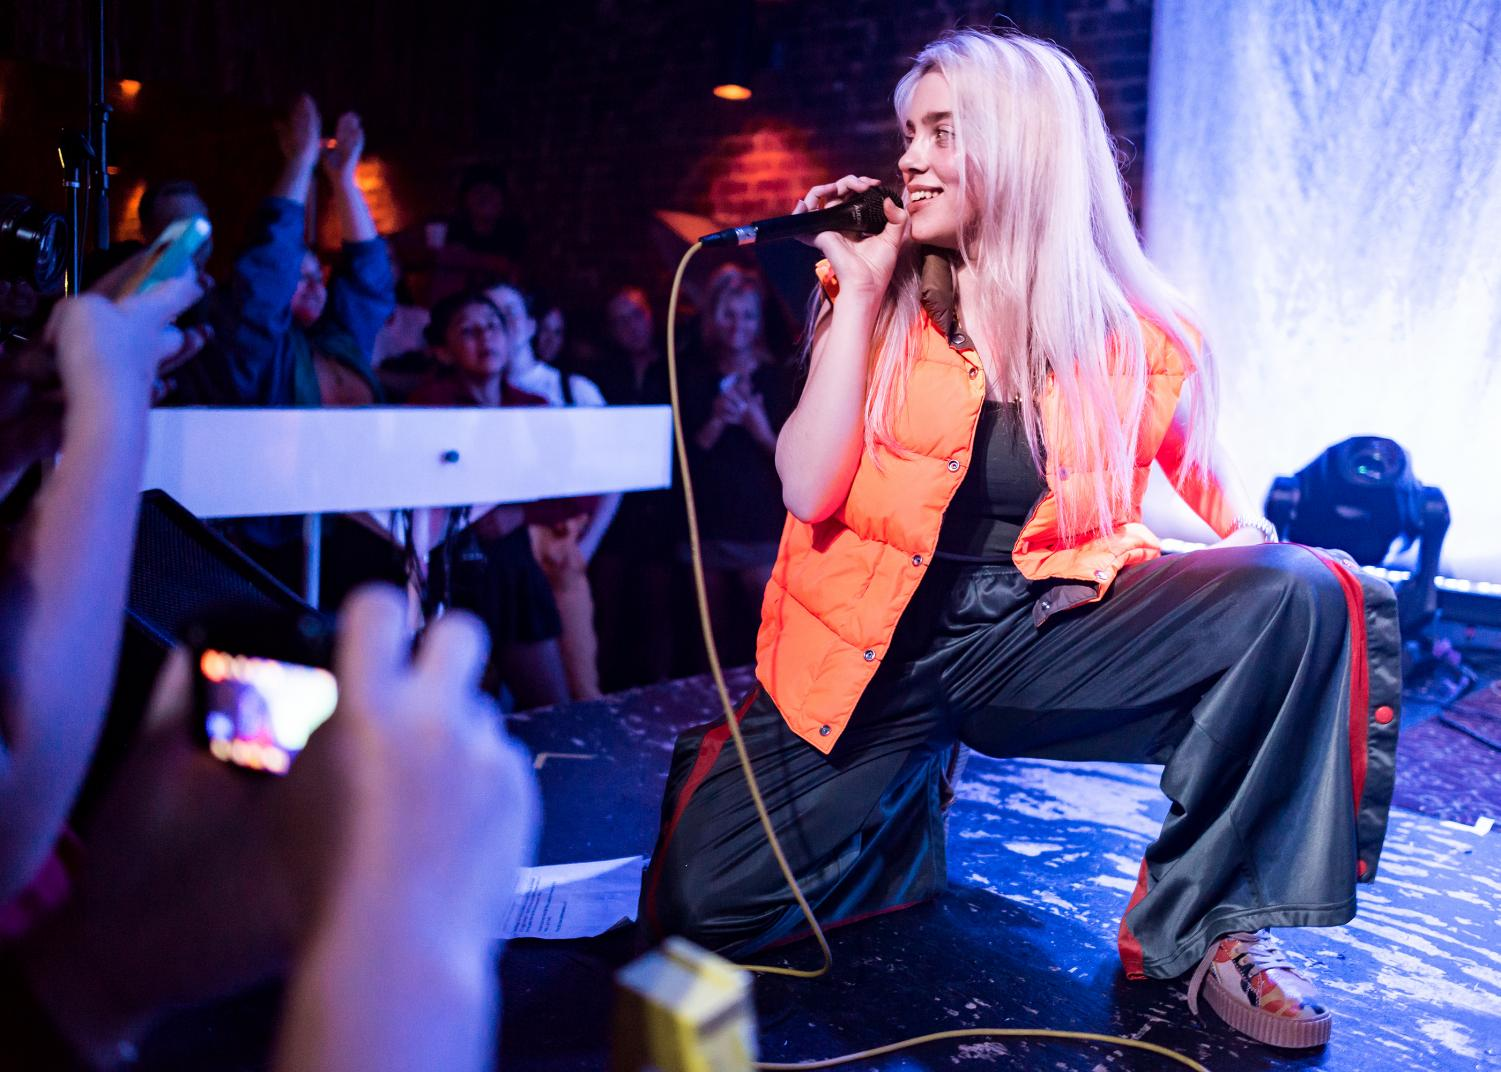 Billie Eilish's new album has taken over the indie pop world